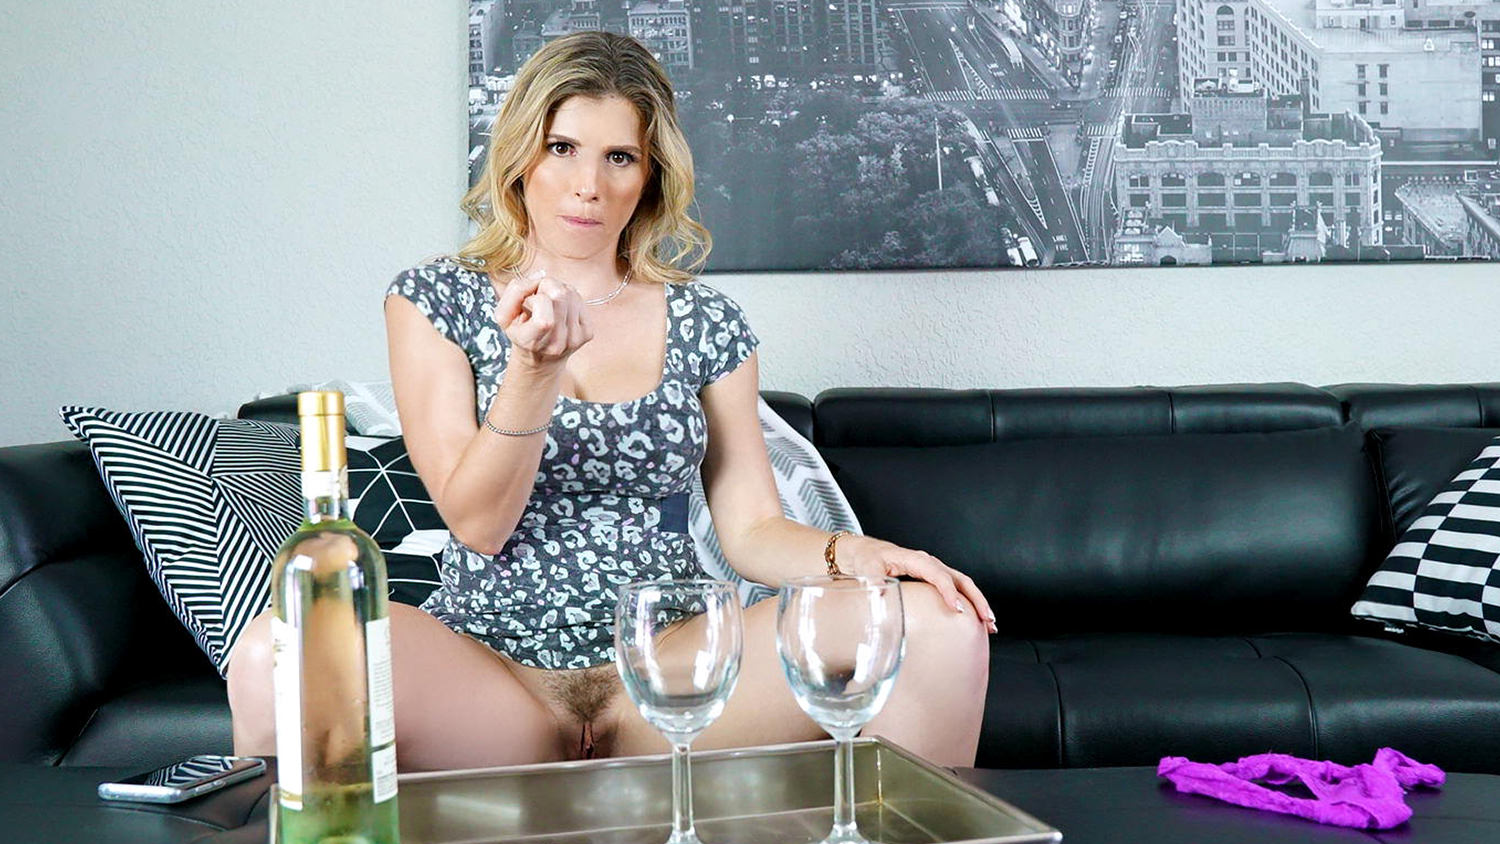 Pervmom cherie deville in Put Your Cock Away Dad Is Home Pervmom – cherie deville in Put Your Cock Away Dad Is Home WEB-DL 1080p h.264 TEAM_AIR